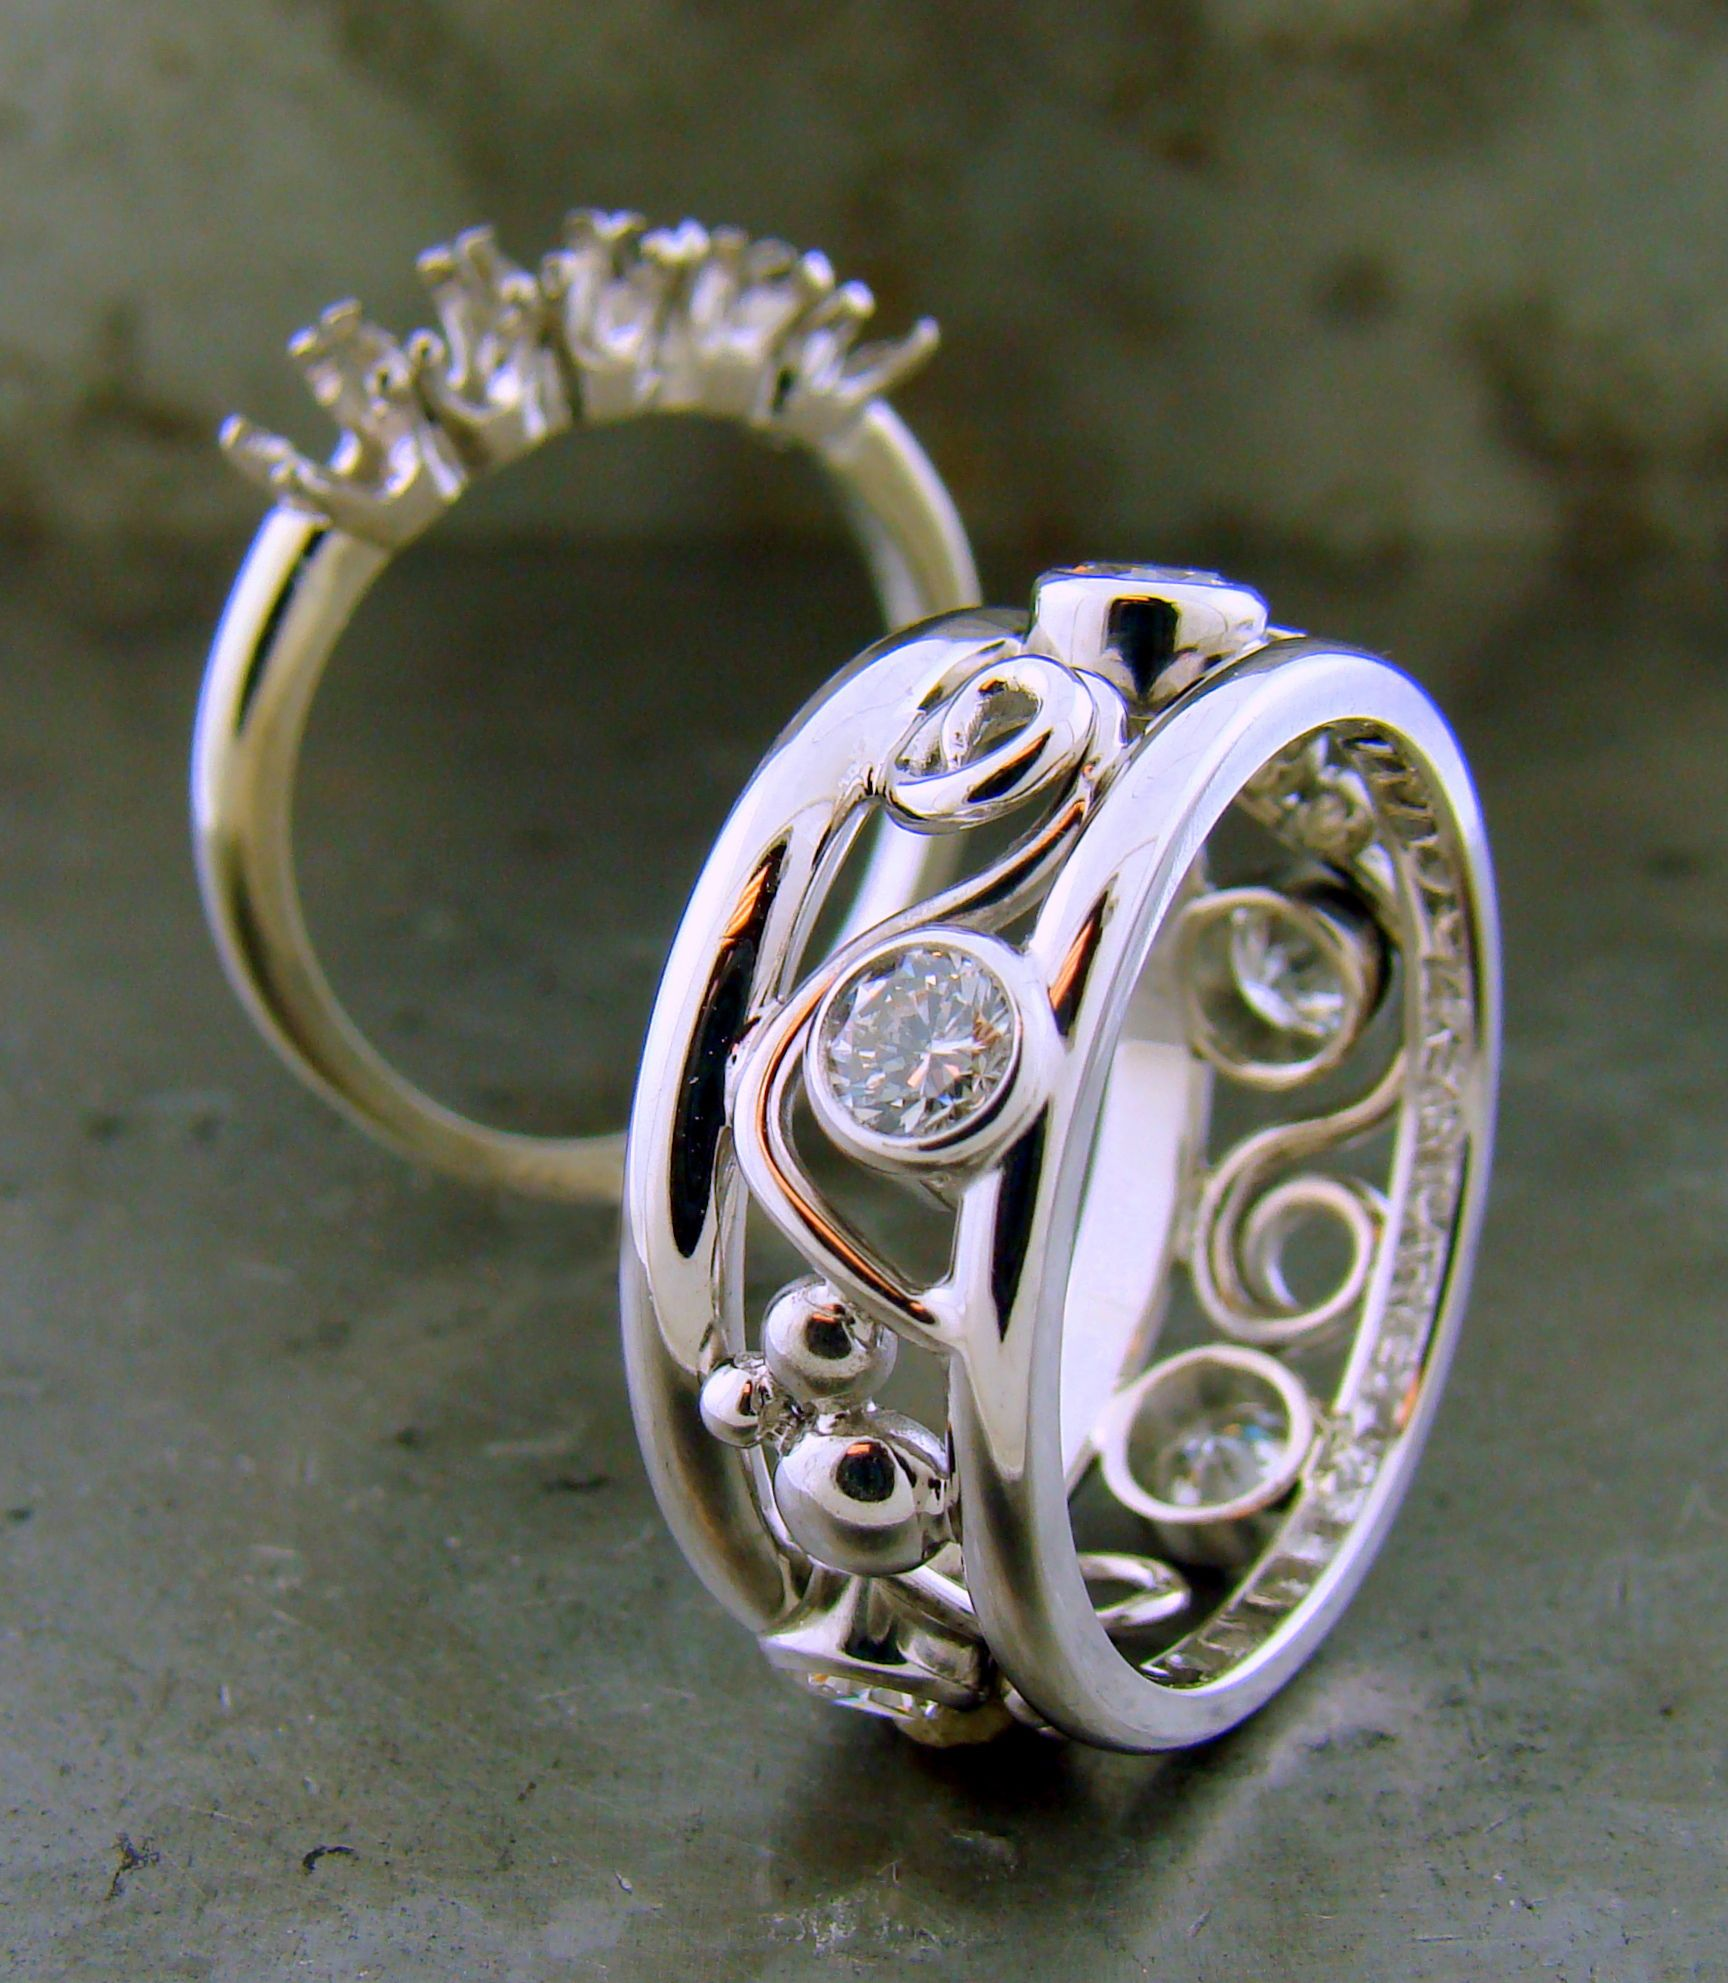 We remounted Patsy's 5 diamonds from her old ring to